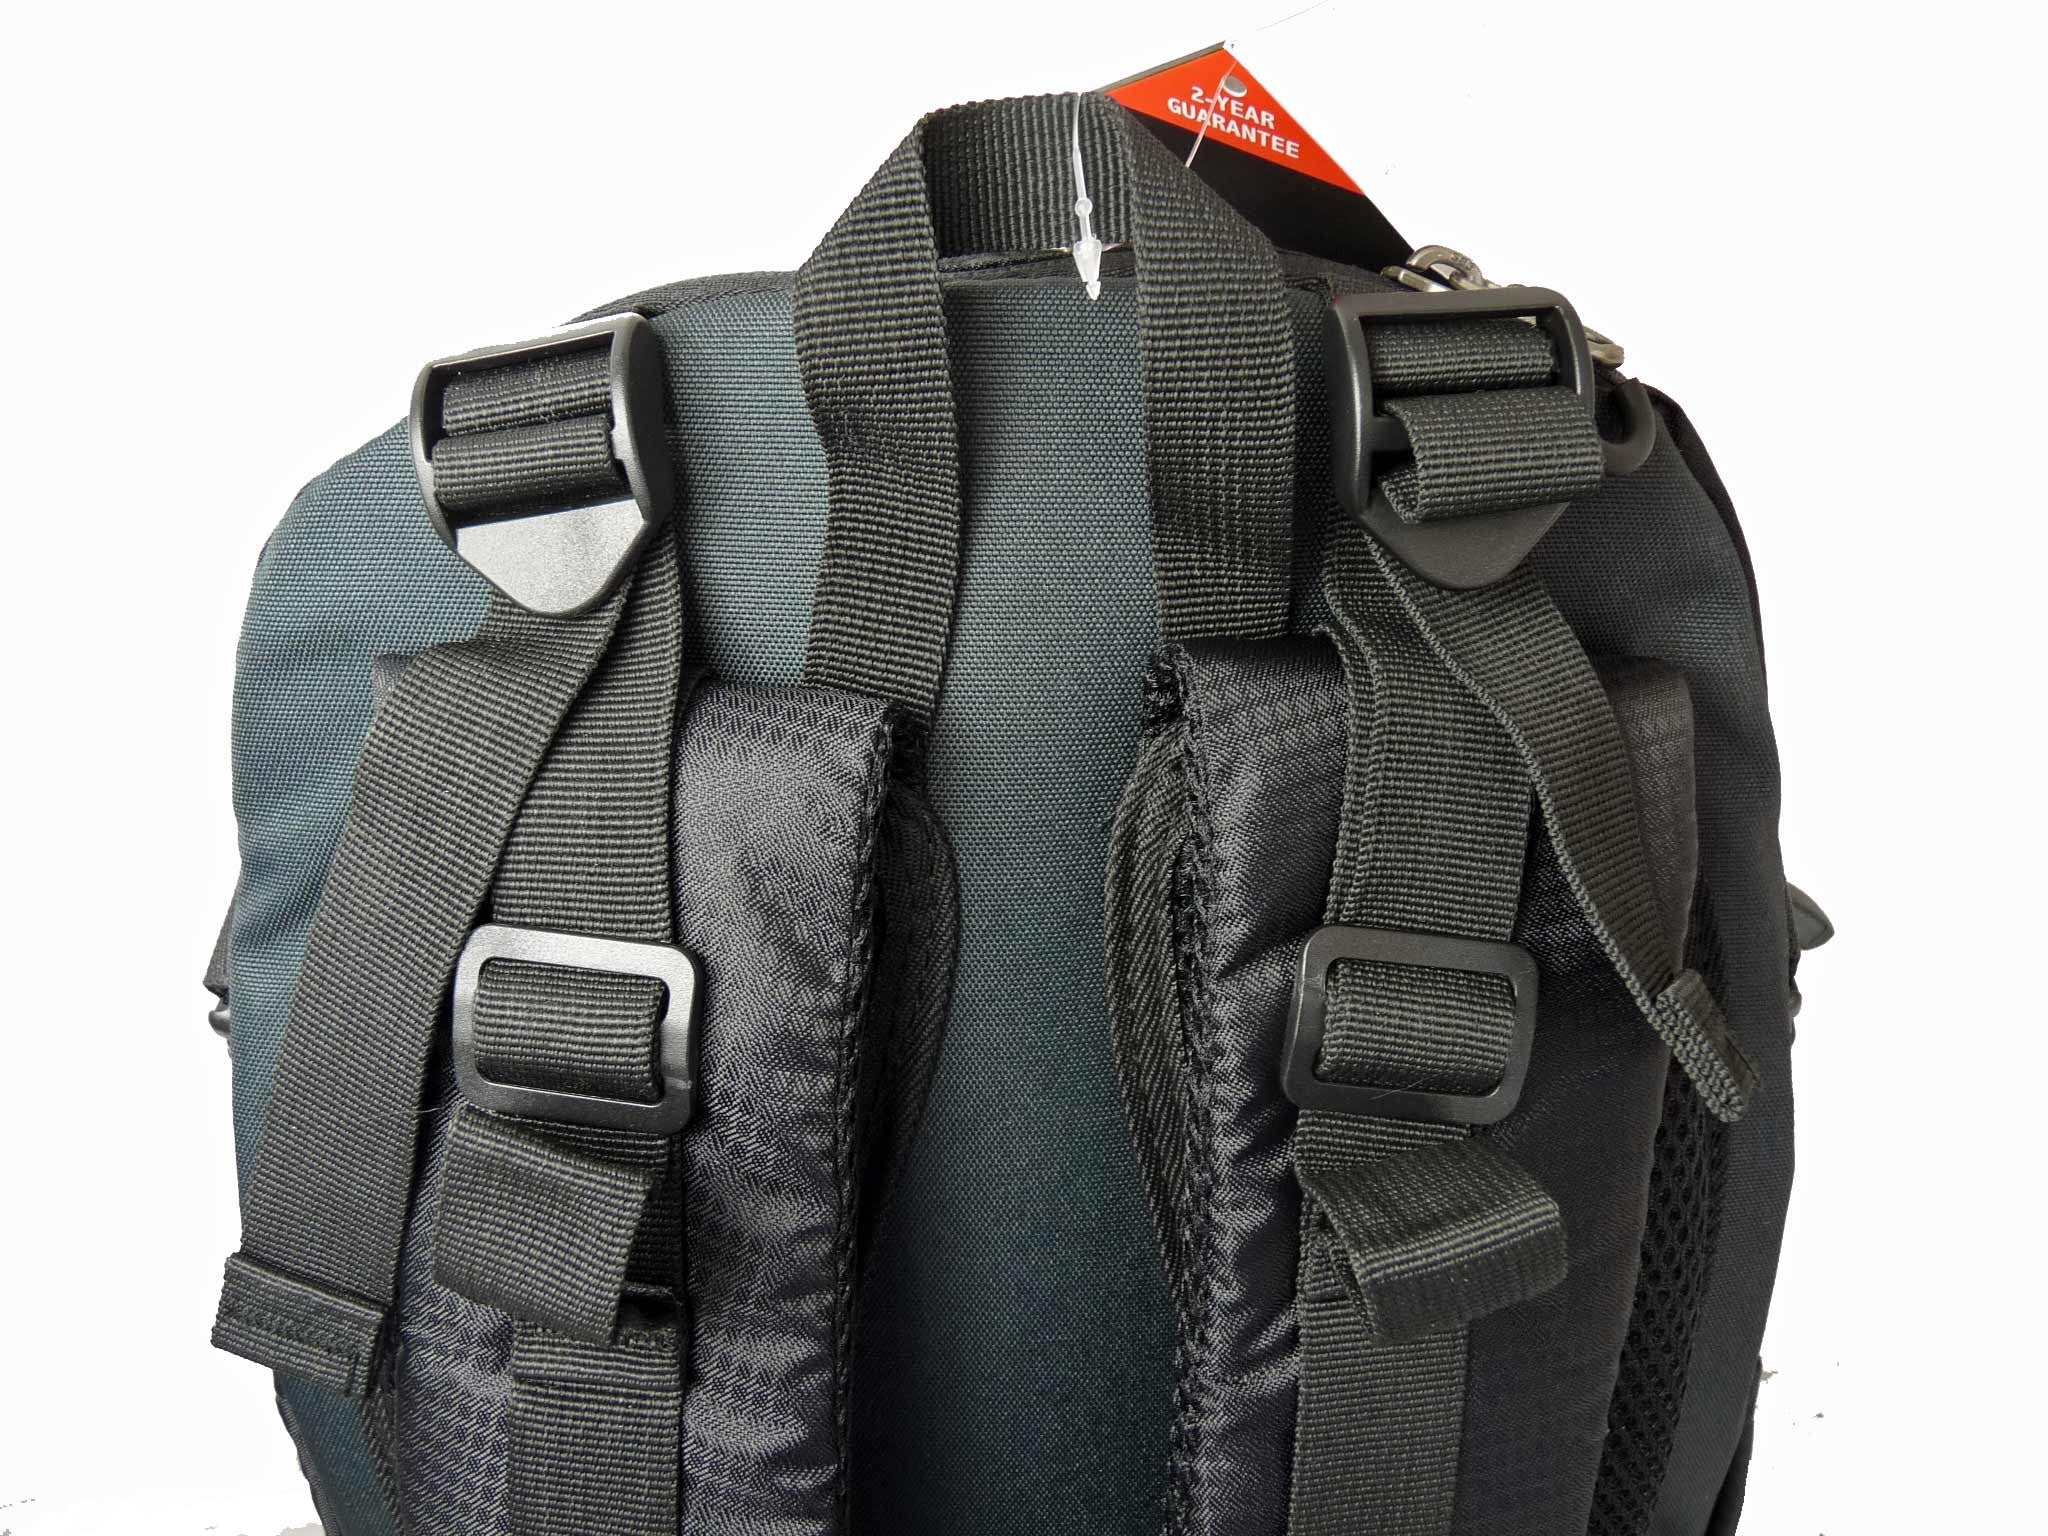 MacBook Air Backpack Rucksack Bag RL23G REAR VIEW 4